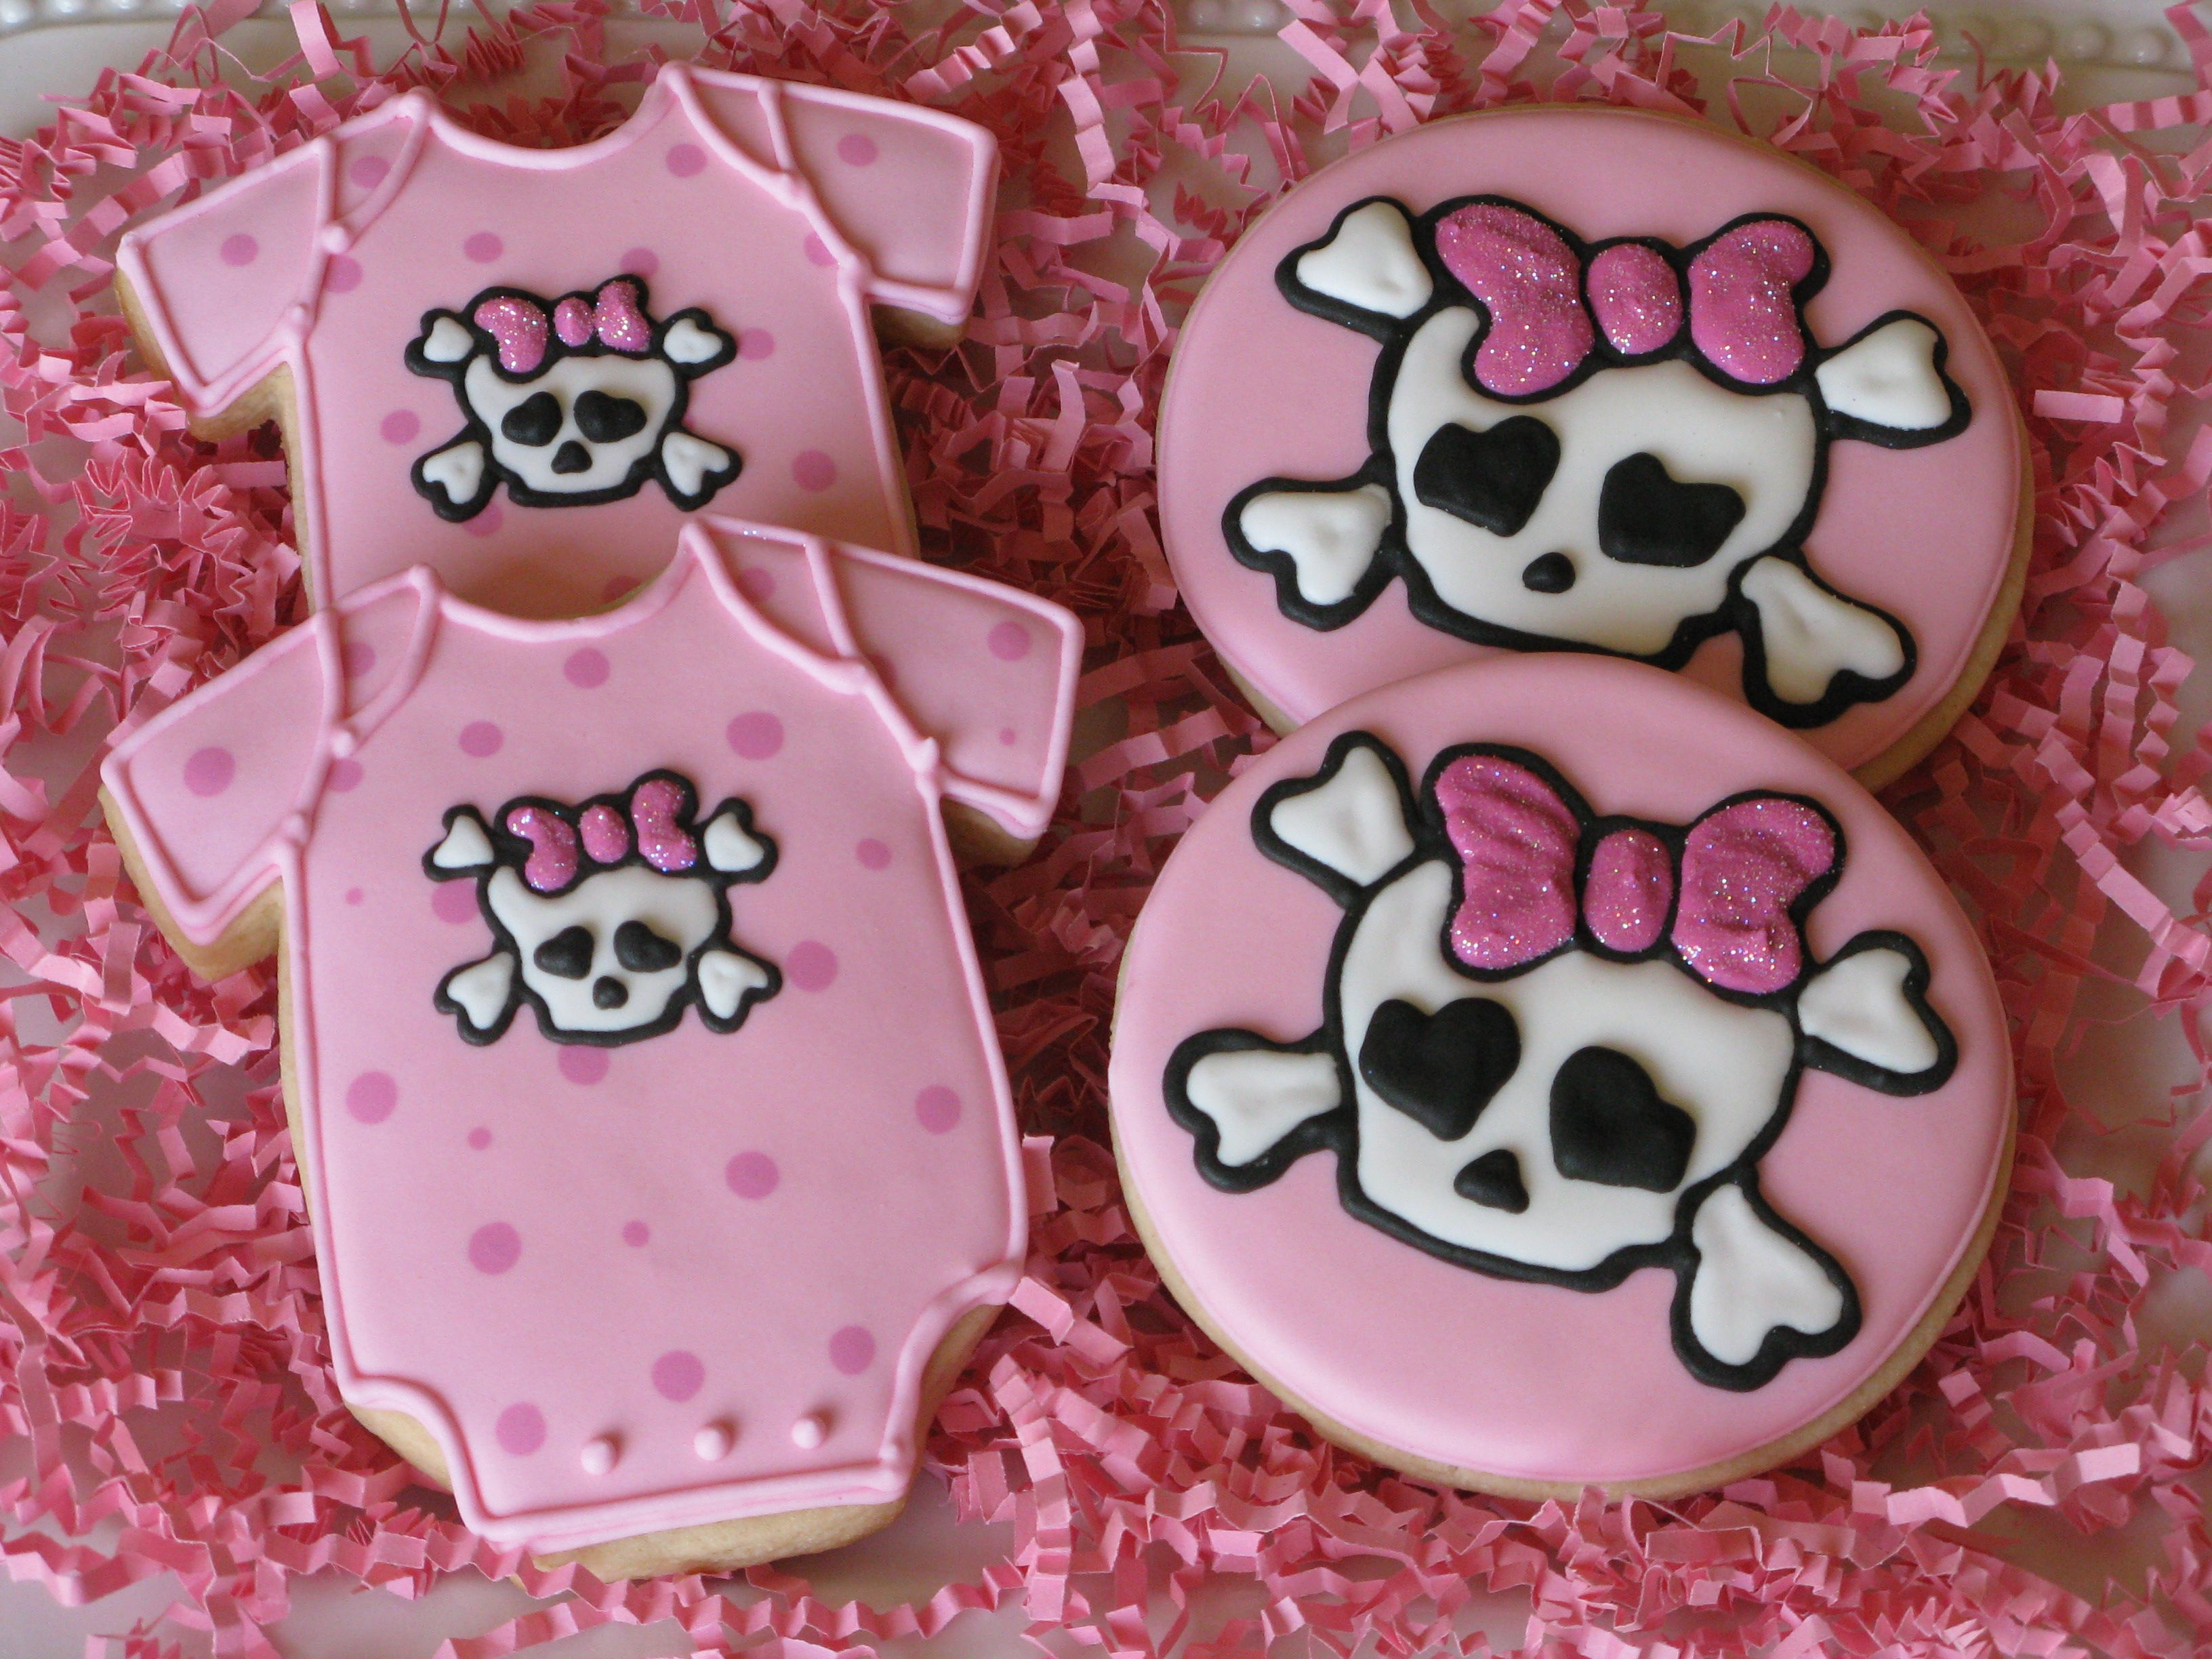 Girl Baby Shower Idea @Leah Foley  This Should Have Been My 2nd Kids Theme  : )